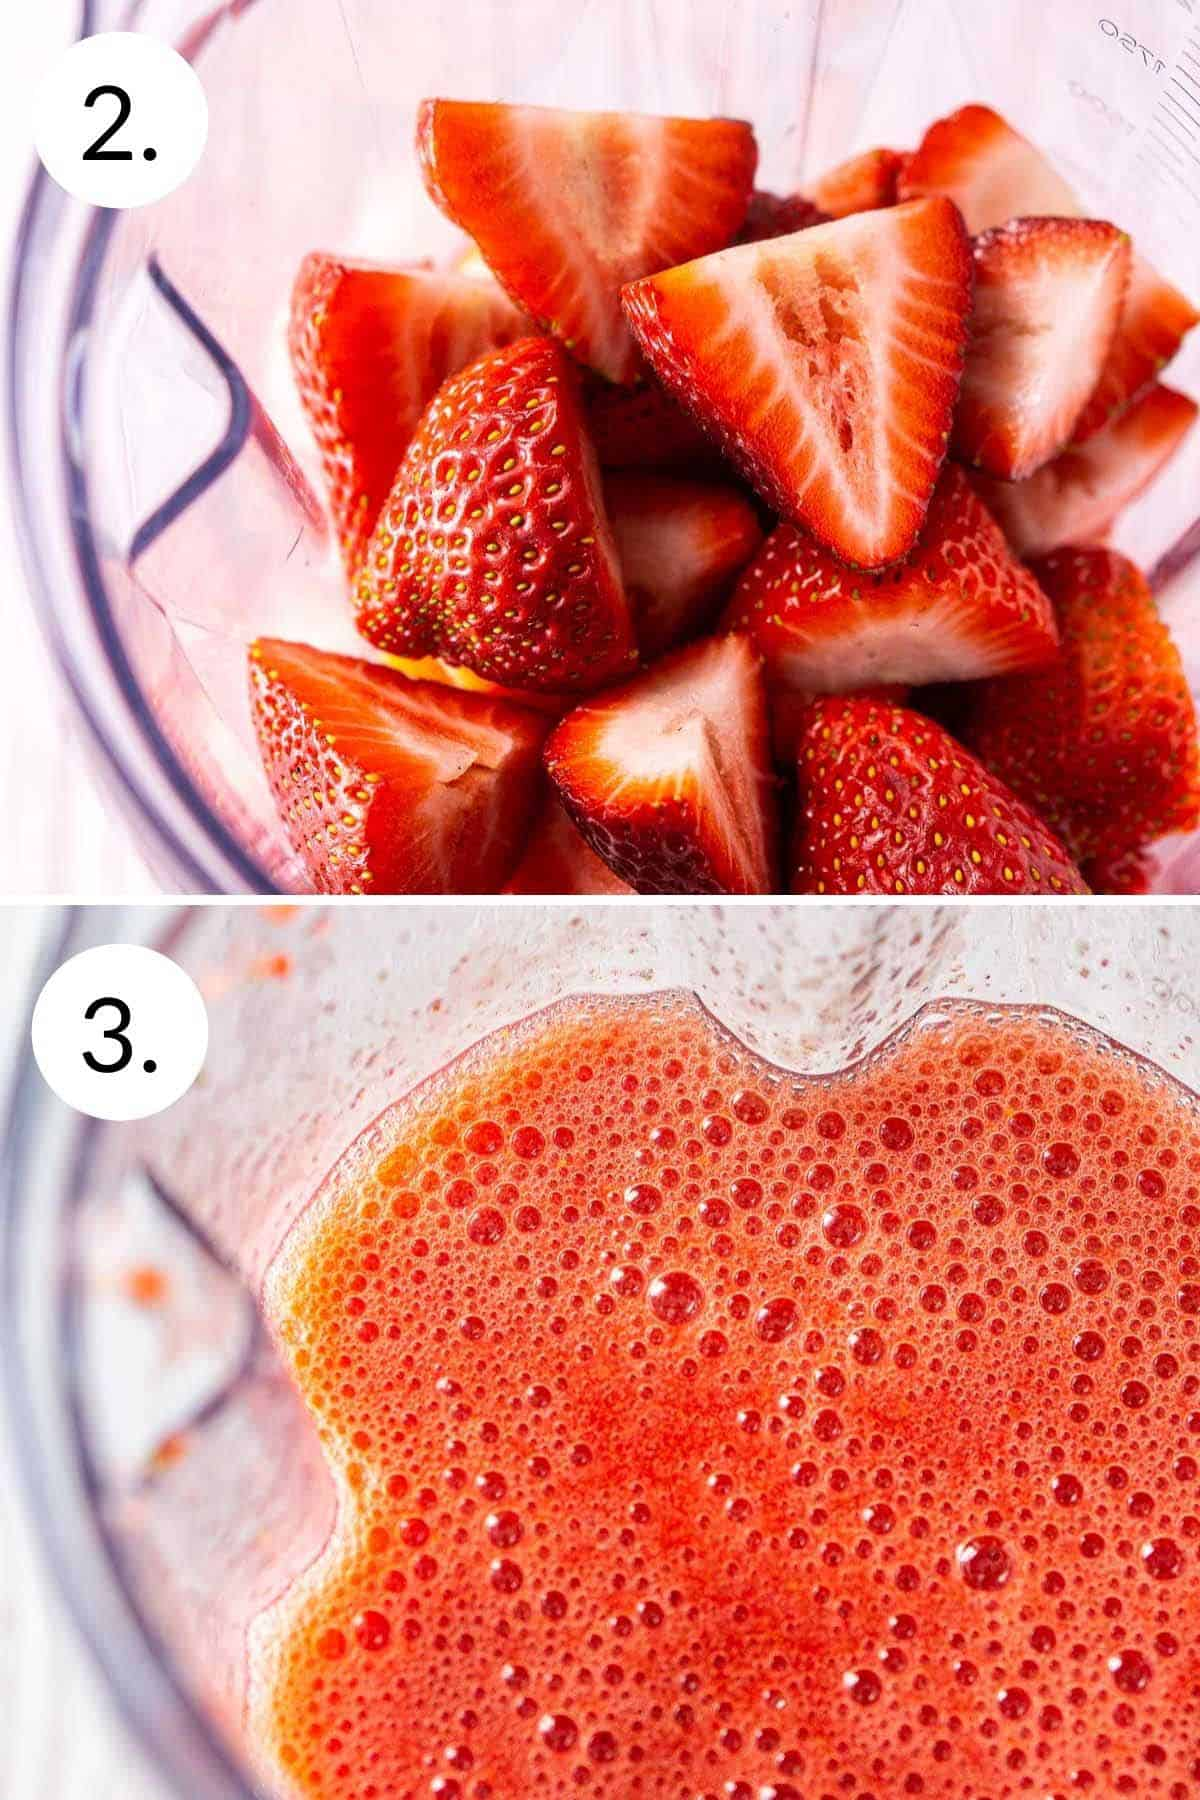 A collage showing the process of blending the strawberries with mint simple syrup and corn syrup.